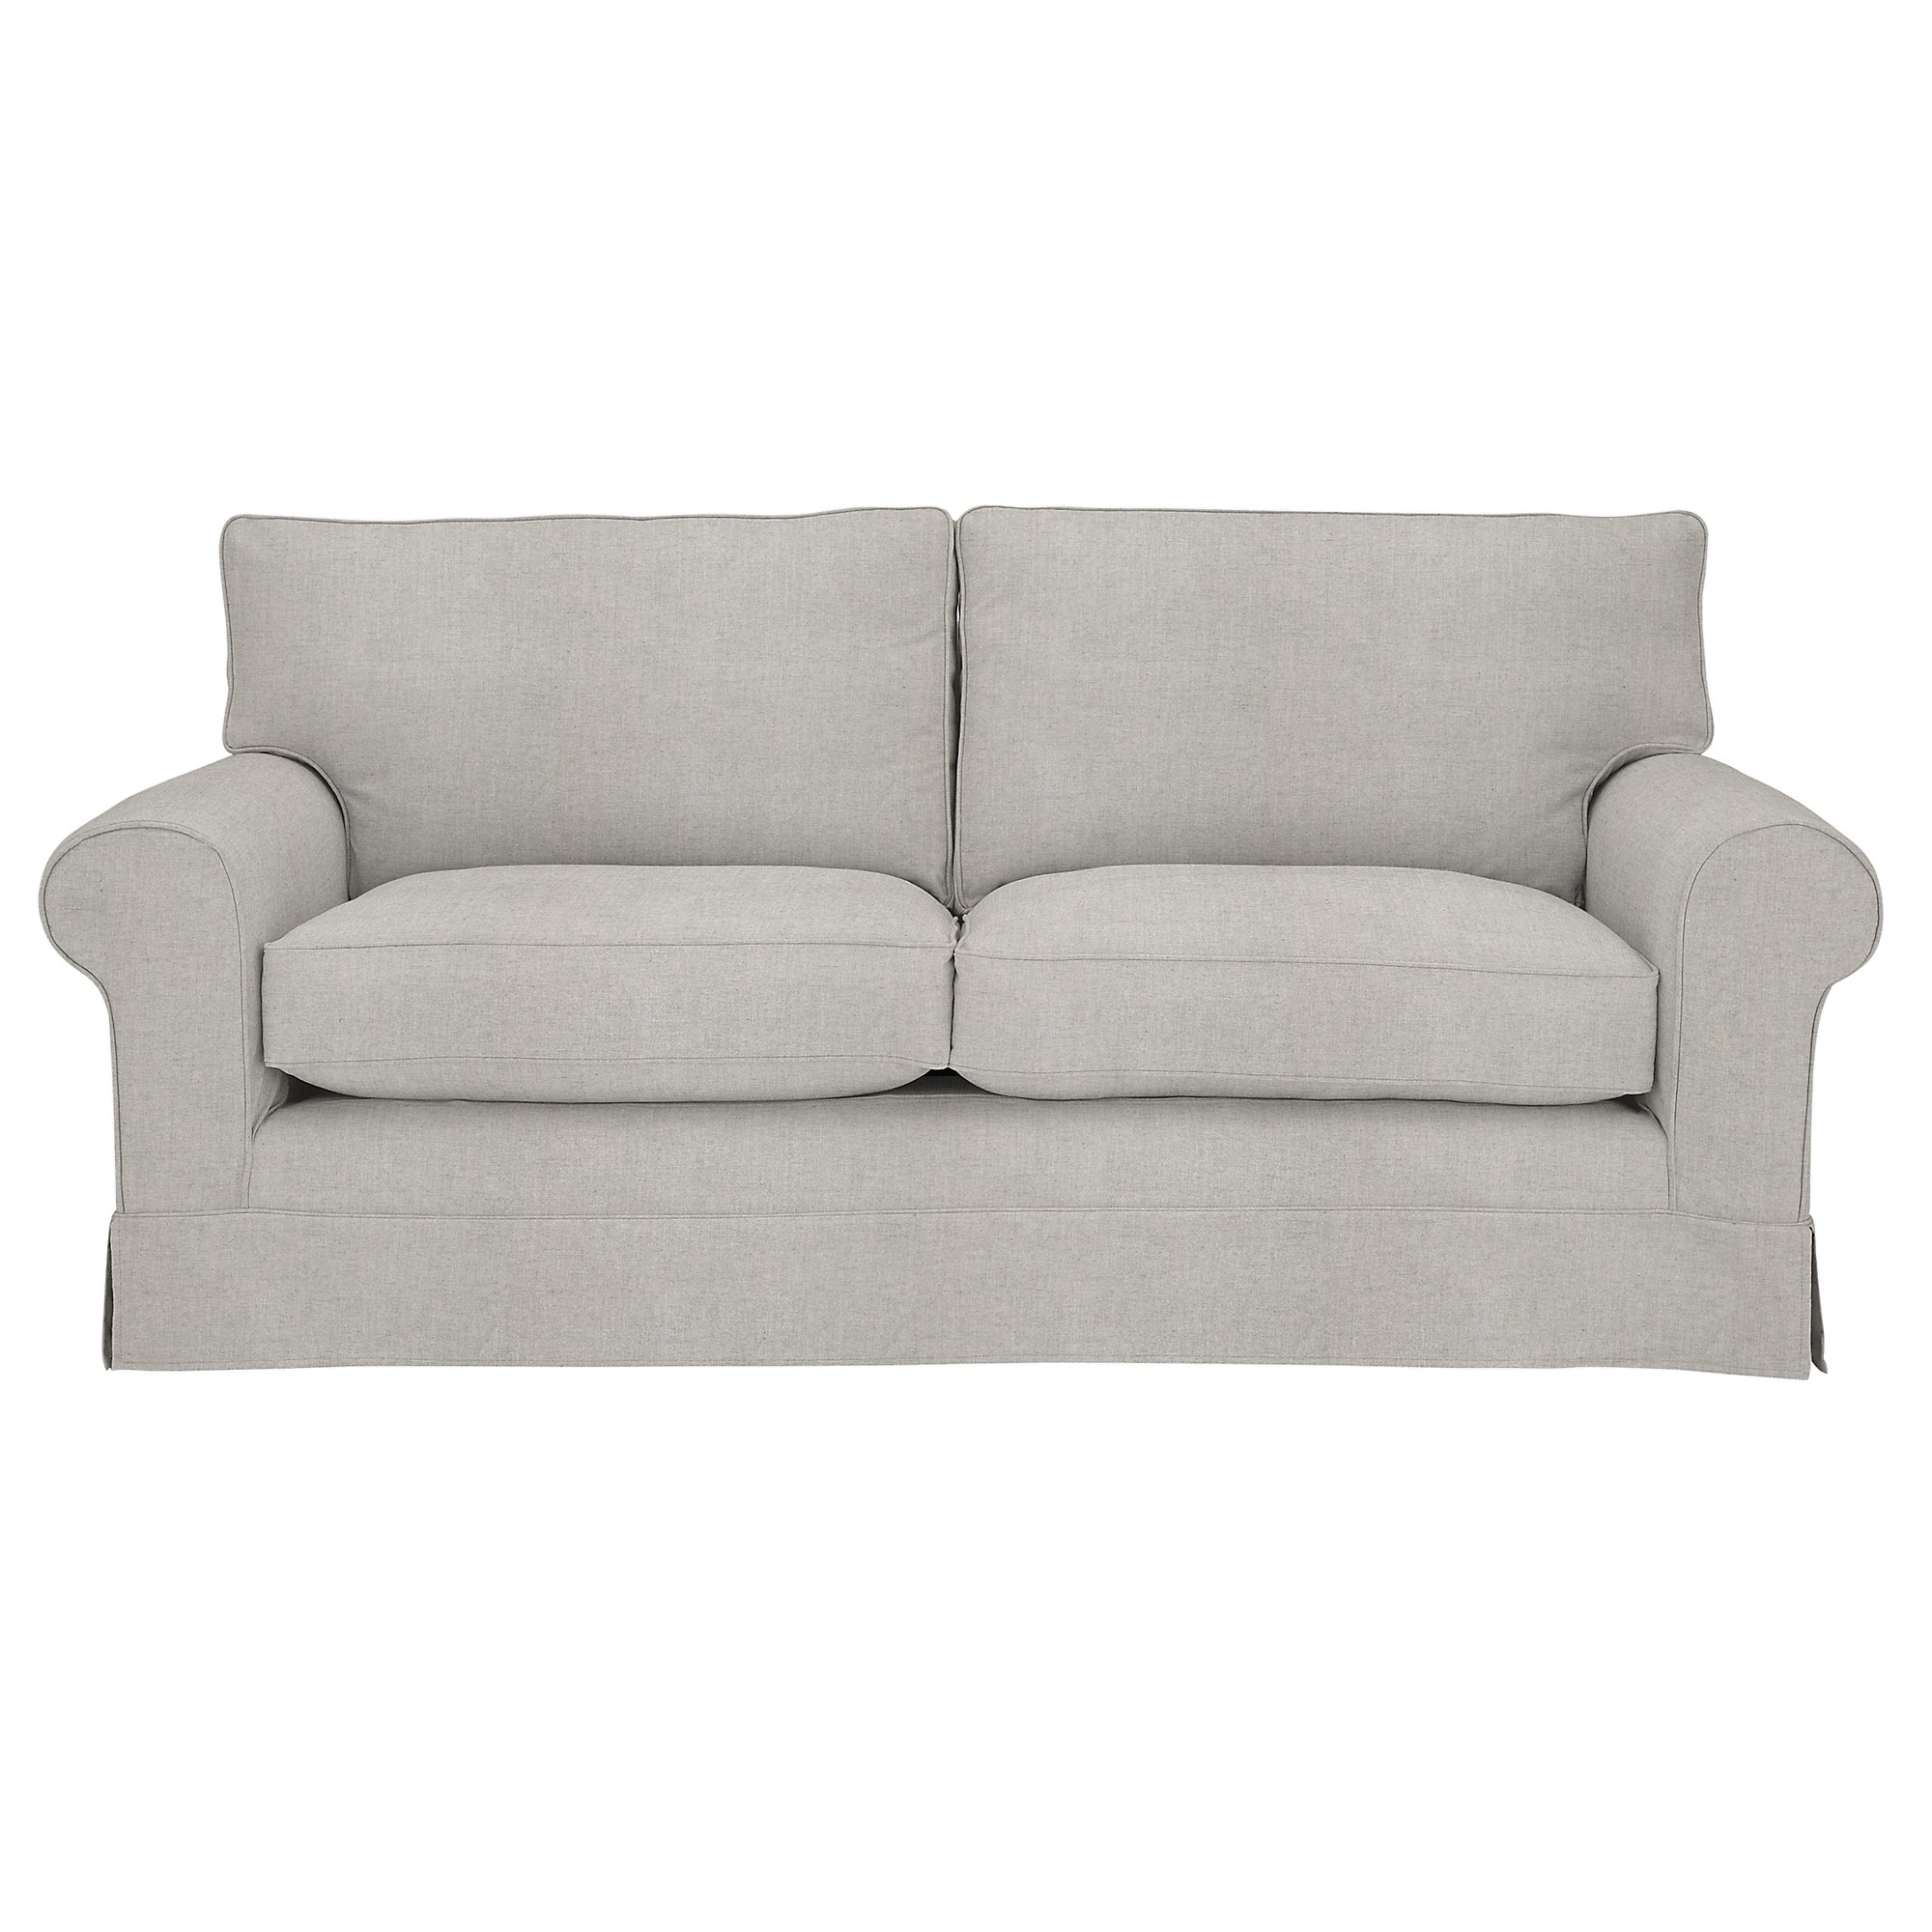 John Lewis Padstow Large Loose Cover Sofa